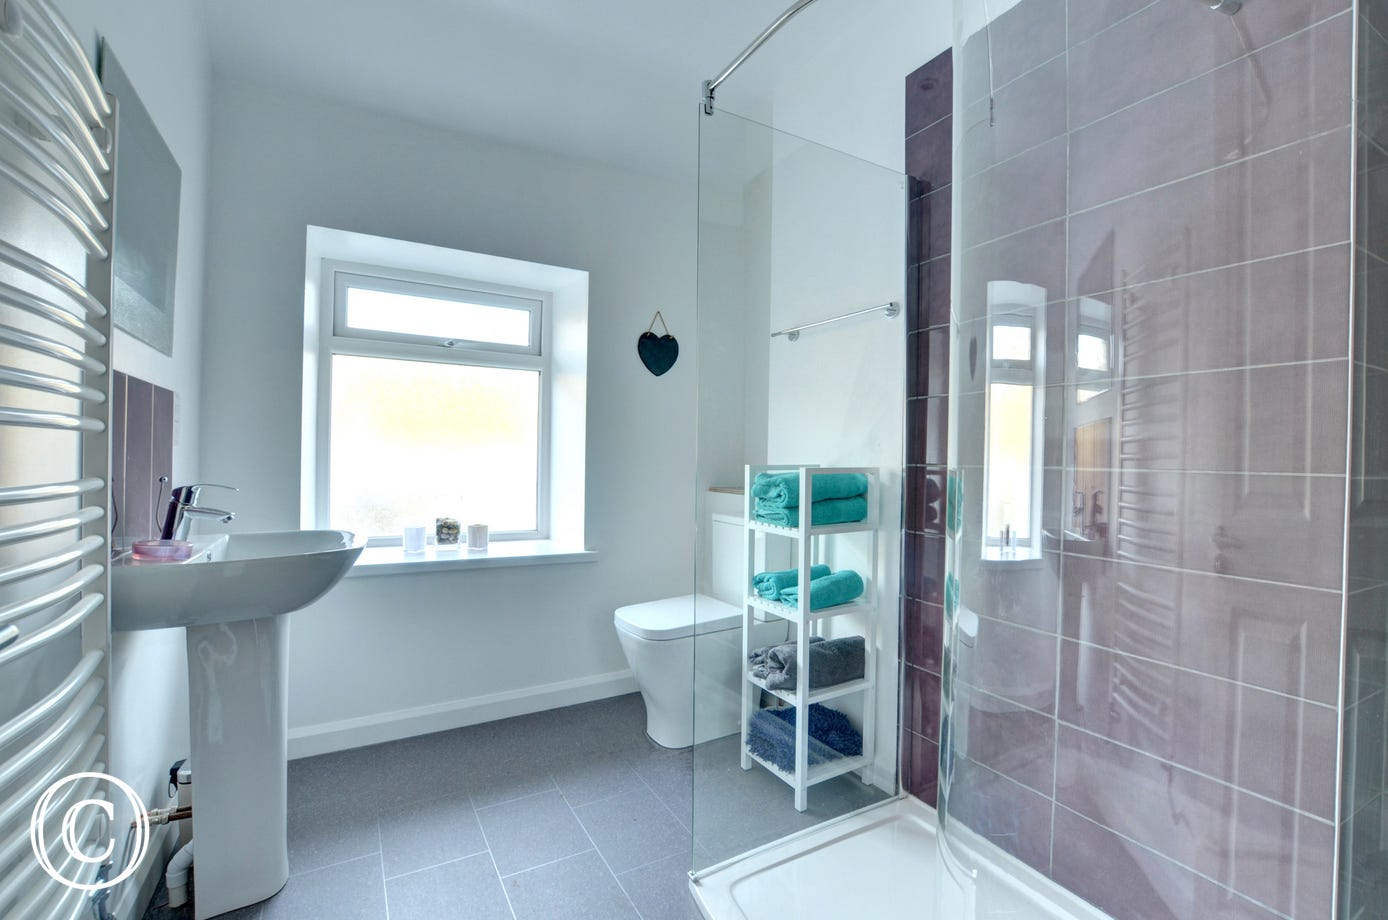 Spacious first floor shower room with modern shower enclosure